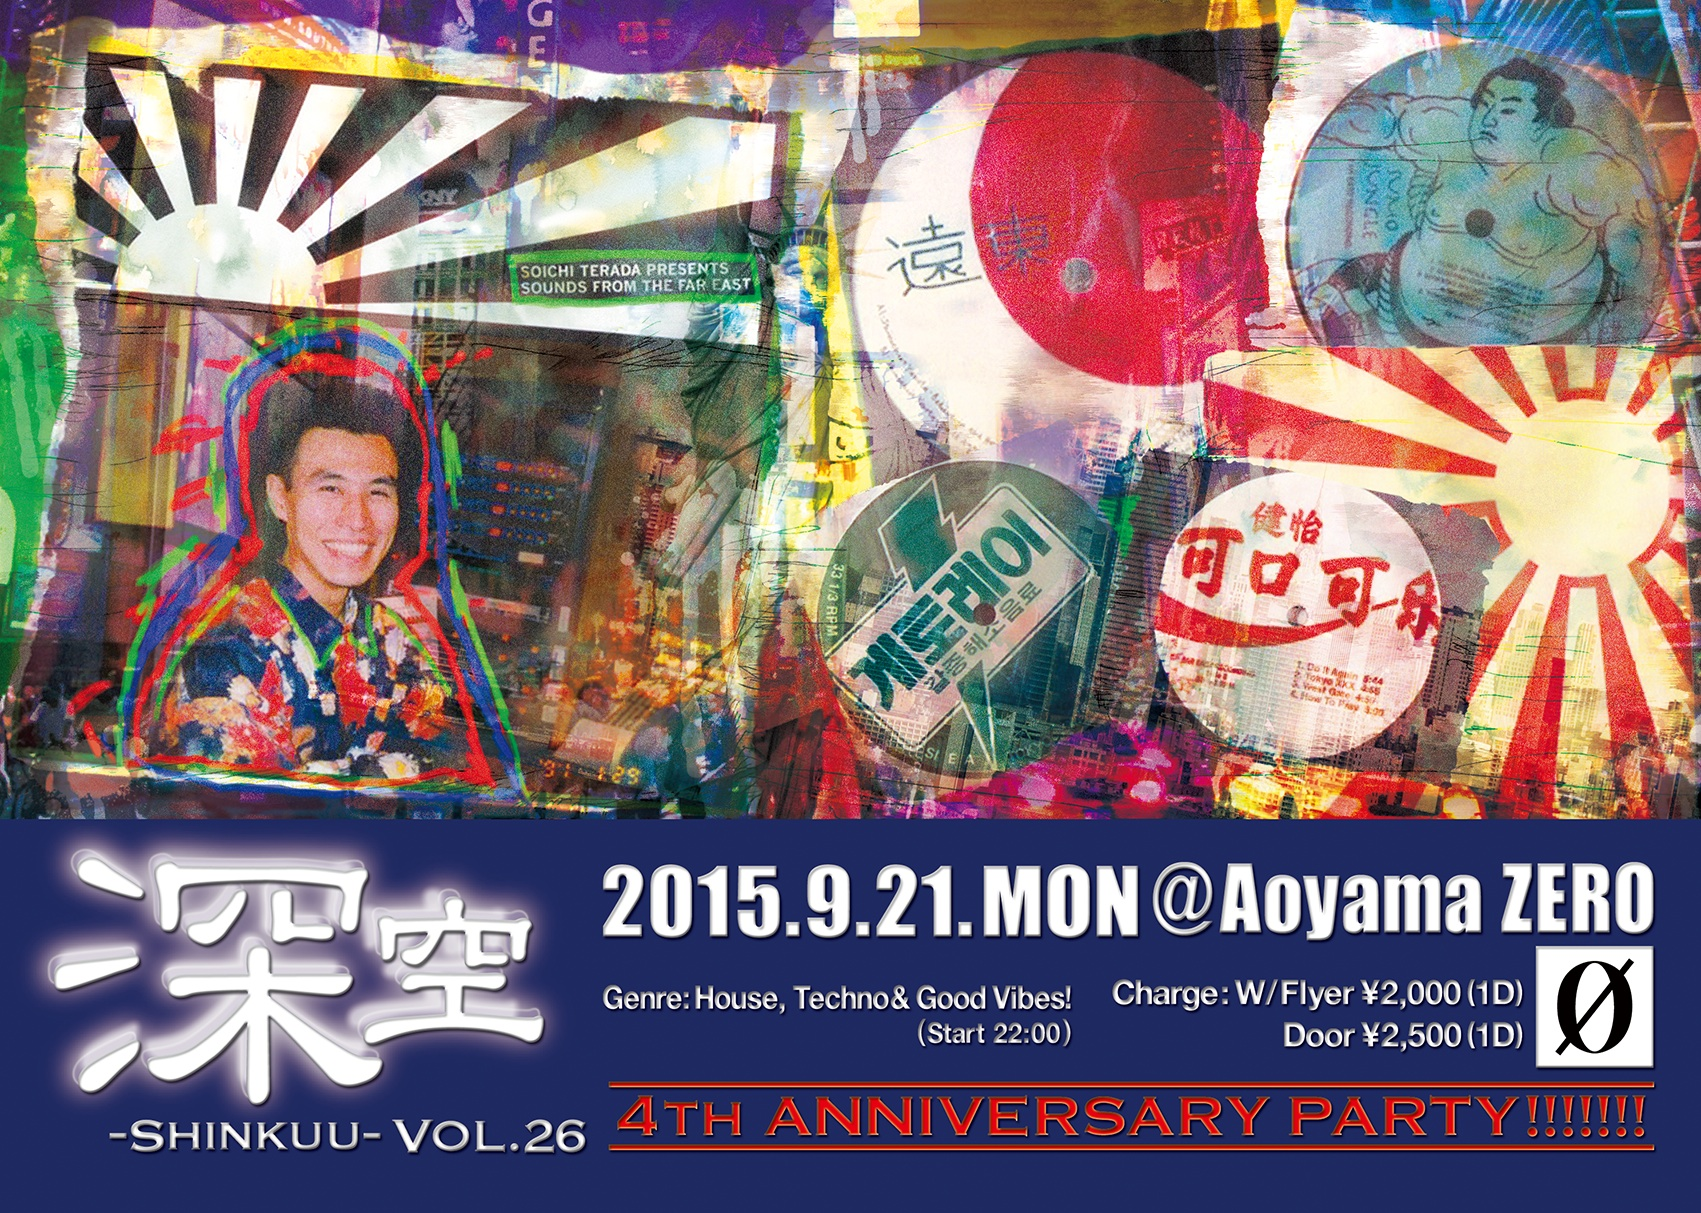 深空-Shinkuu-Vol.26」4th Anniversary Party